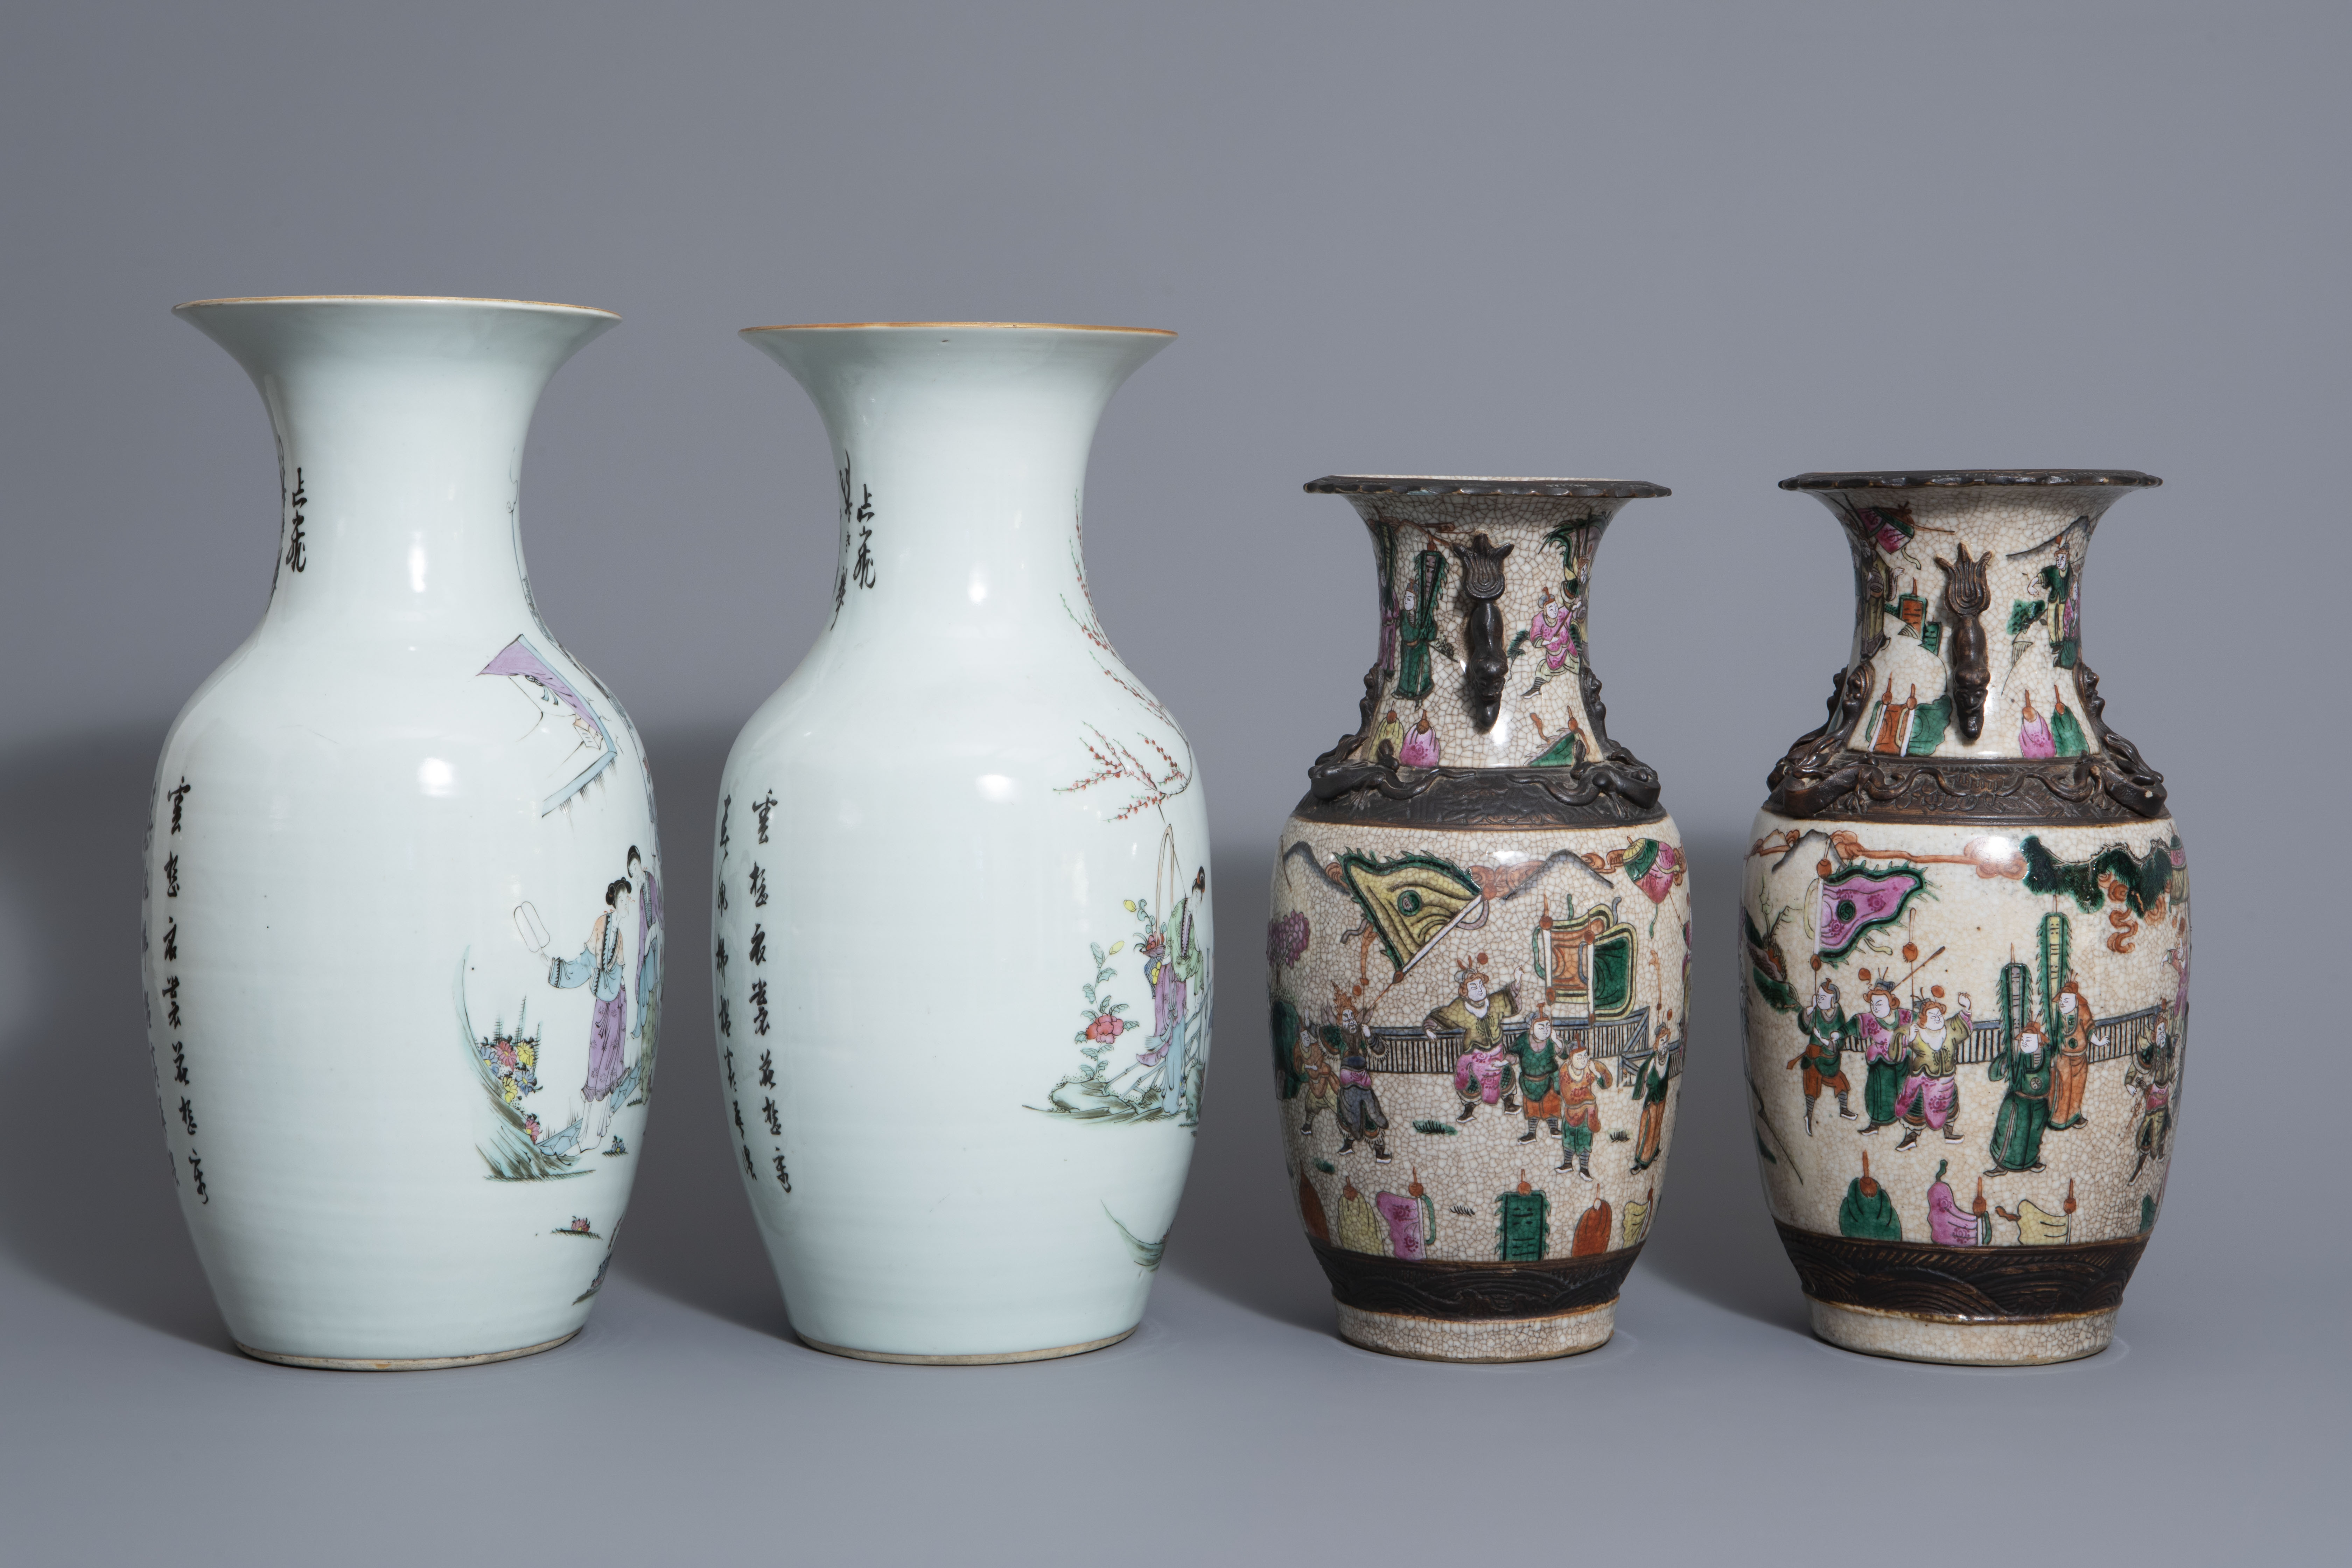 Two pairs of Chinese famille rose and Nanking crackle glazed vases, 19th/20th C. - Image 3 of 7